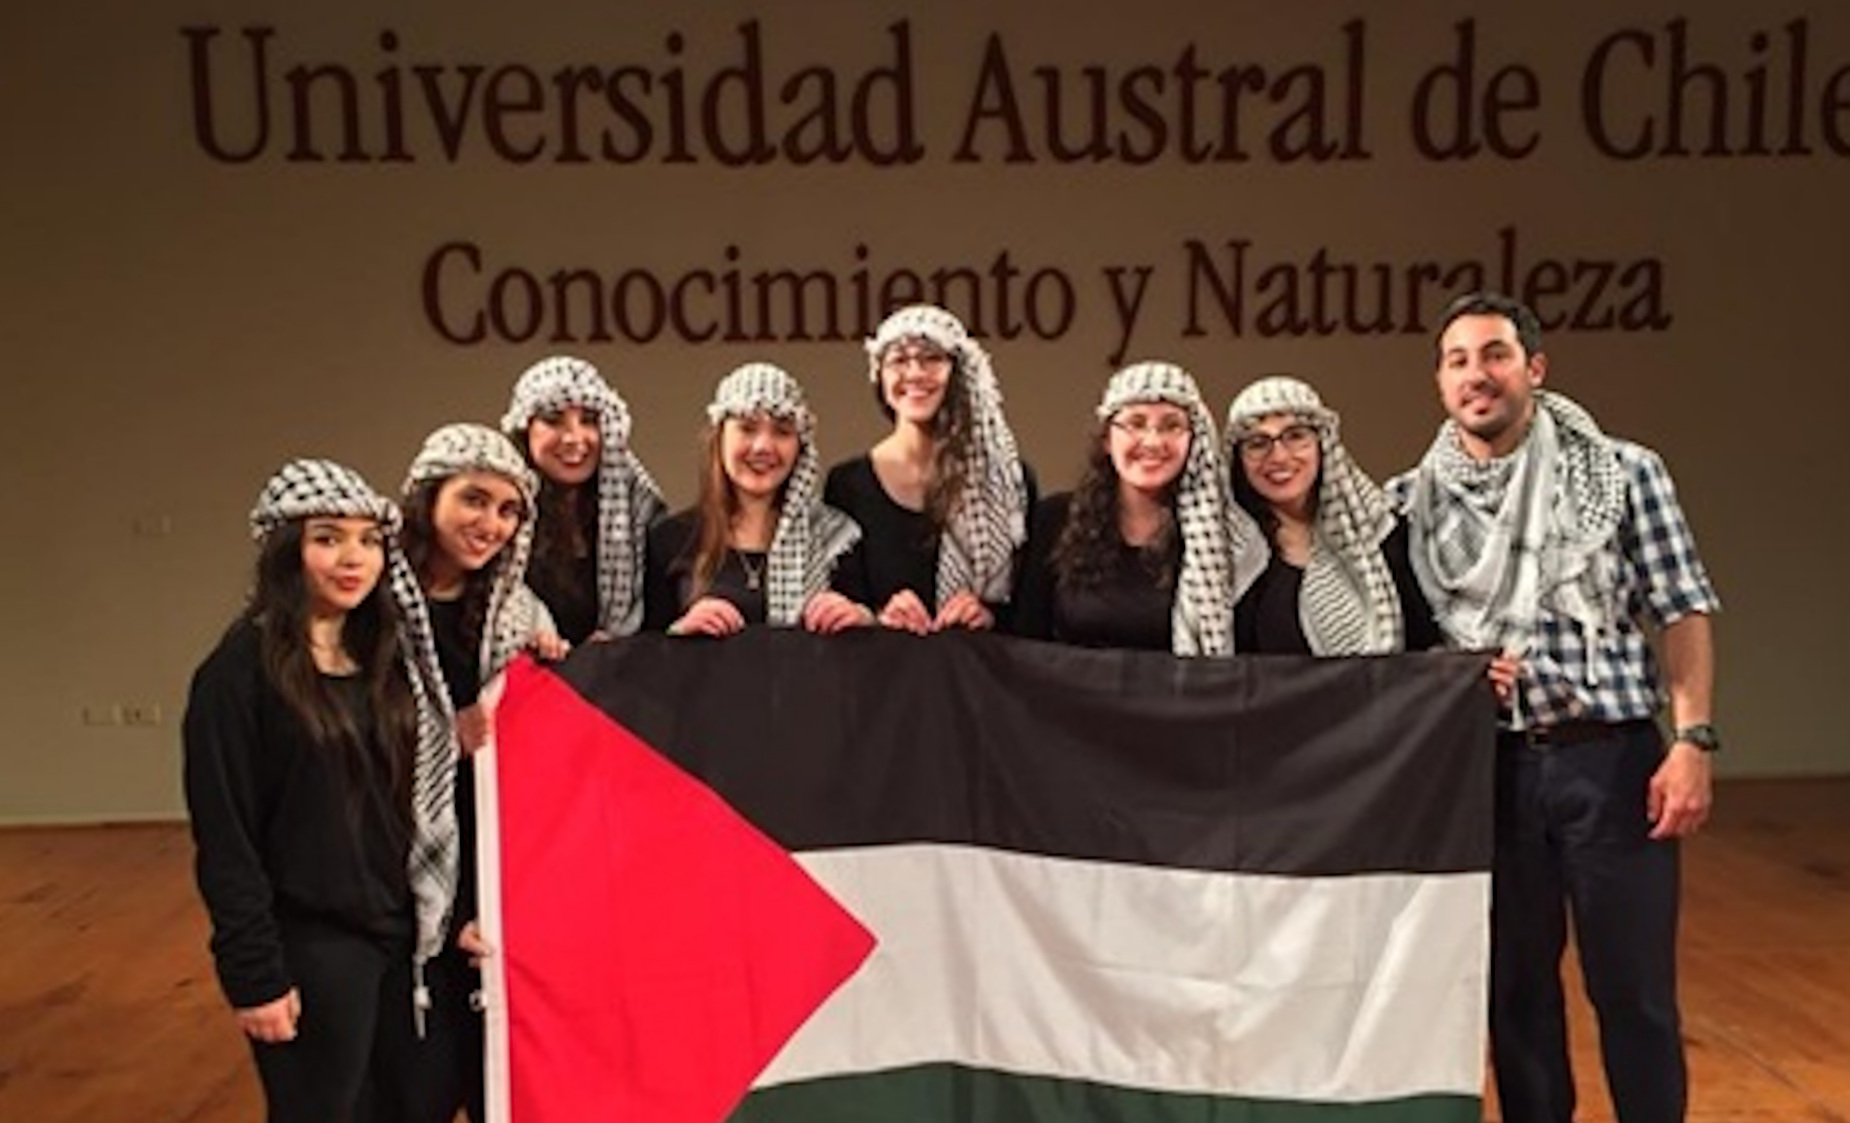 Student Federation of the Austral University of Chile (FEUACh) declares itself an Israeli Apartheid Free Zone